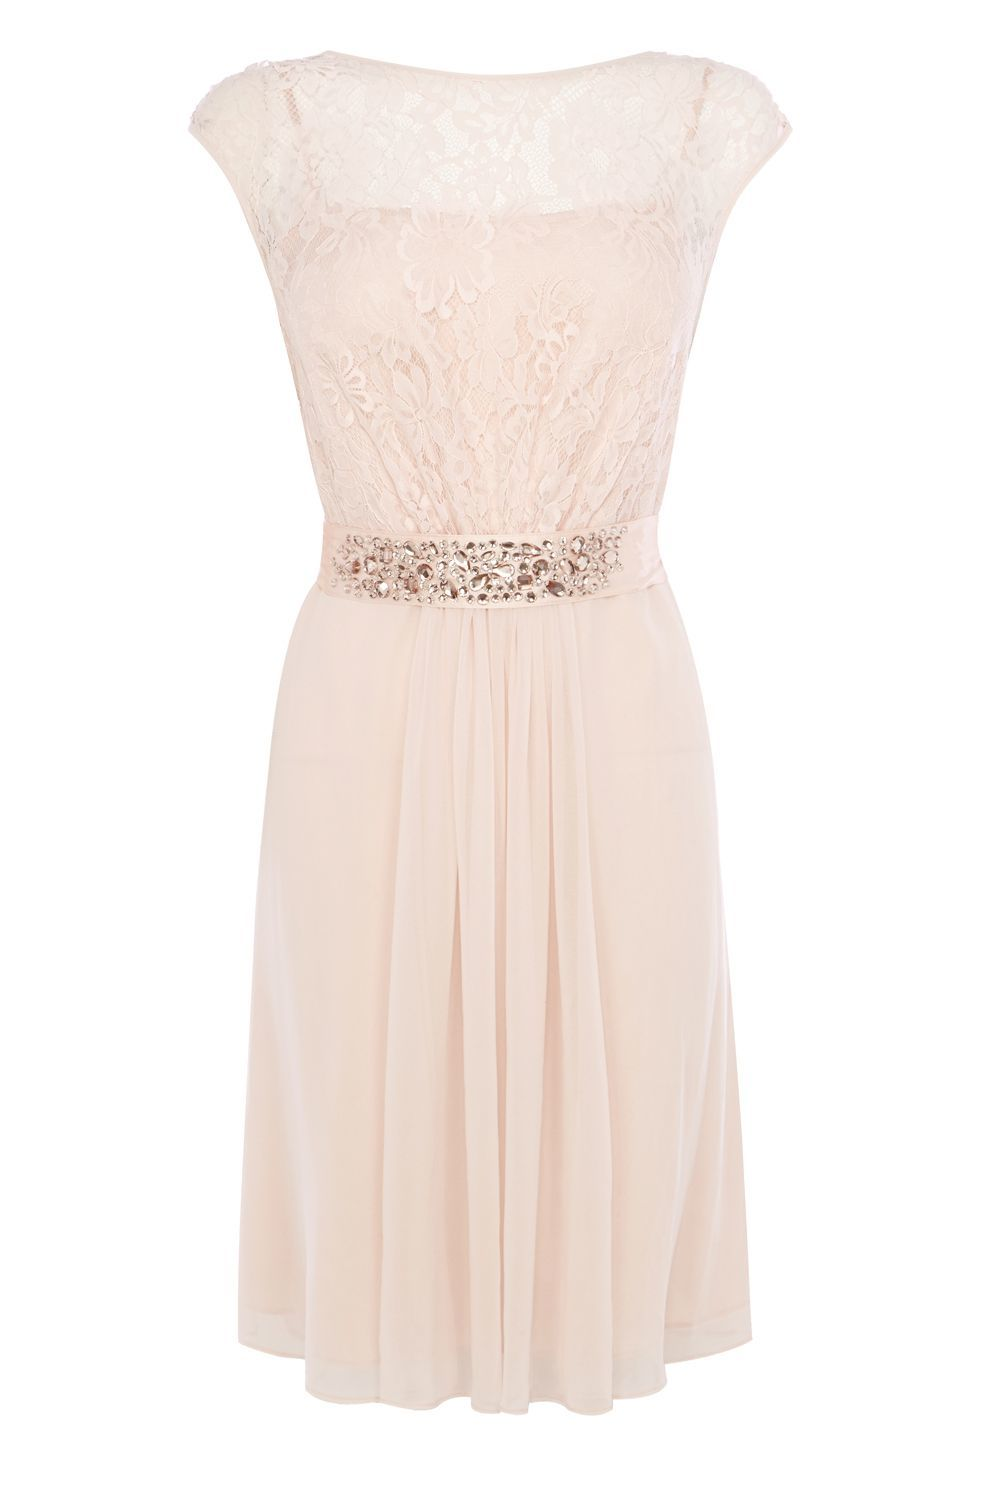 Lori Lee Lace Short Dress, Blush - neckline: round neck; sleeve style: capped; waist detail: embellishment at waist/feature waistband; predominant colour: blush; length: on the knee; fit: fitted at waist & bust; style: fit & flare; fibres: polyester/polyamide - 100%; occasions: occasion; sleeve length: short sleeve; texture group: sheer fabrics/chiffon/organza etc.; pattern type: fabric; pattern: patterned/print; embellishment: beading; season: s/s 2016